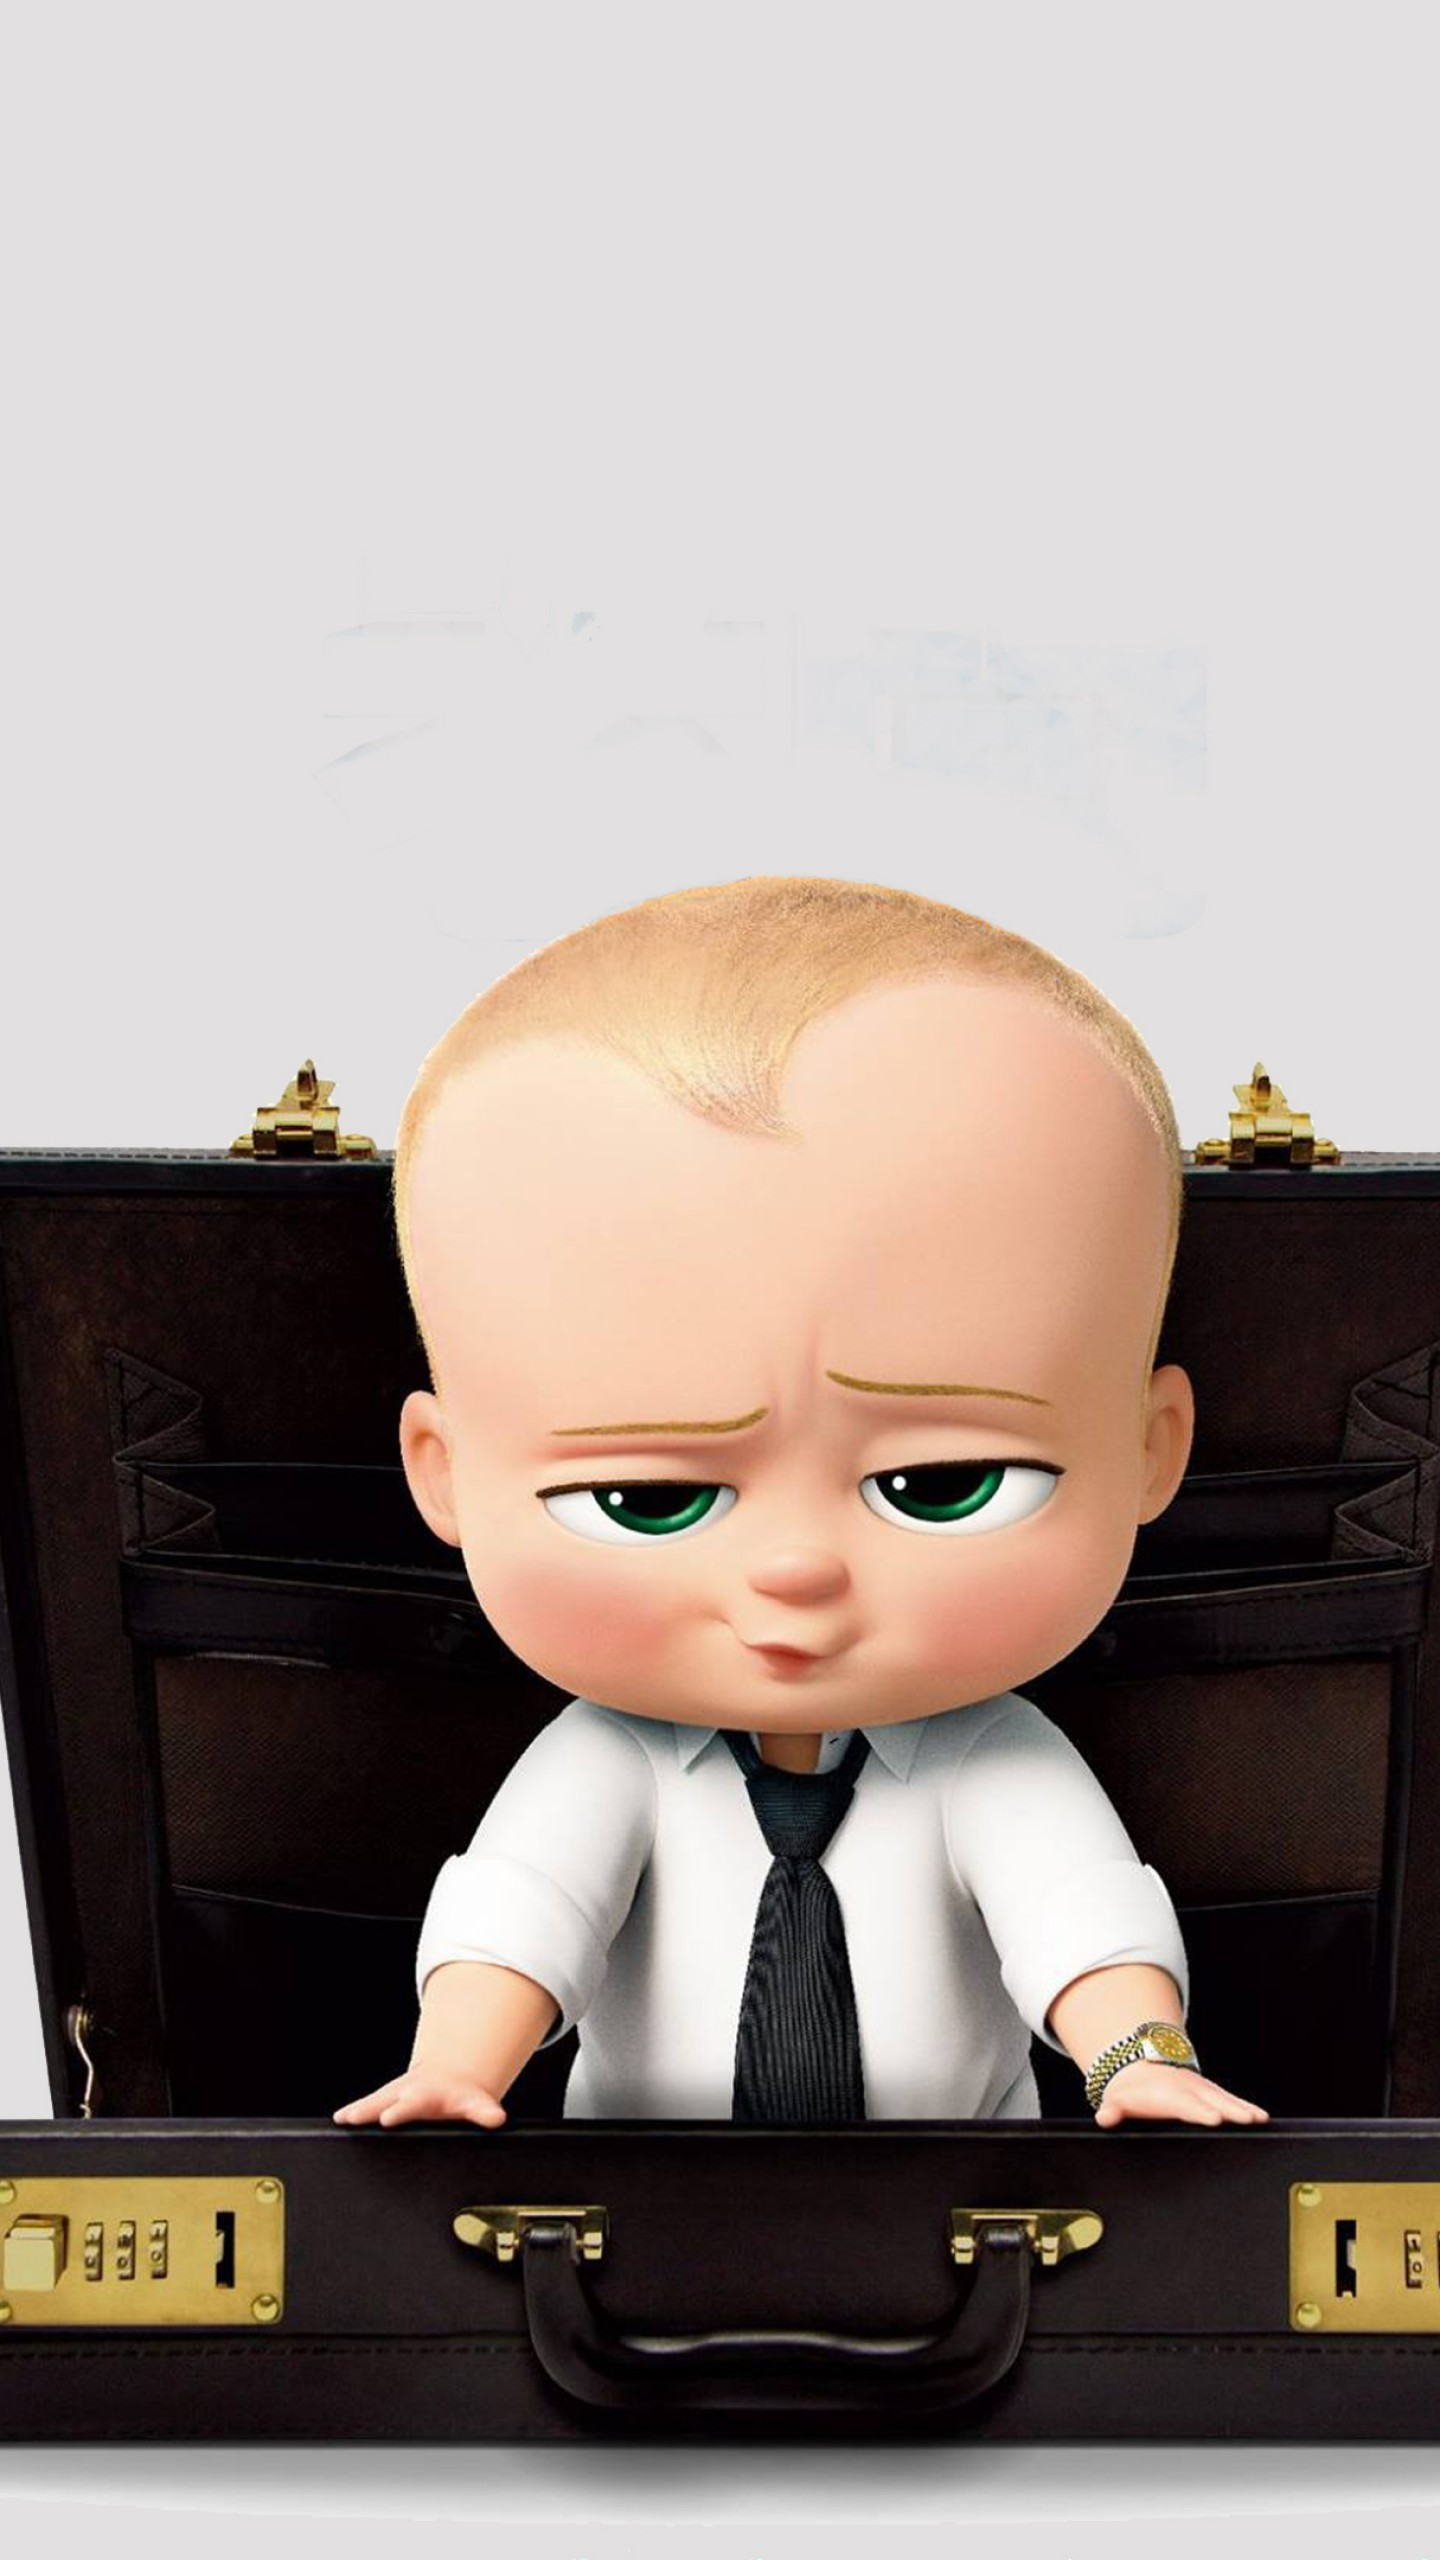 Wallpaper The Boss Baby Baby Costume Best Animation